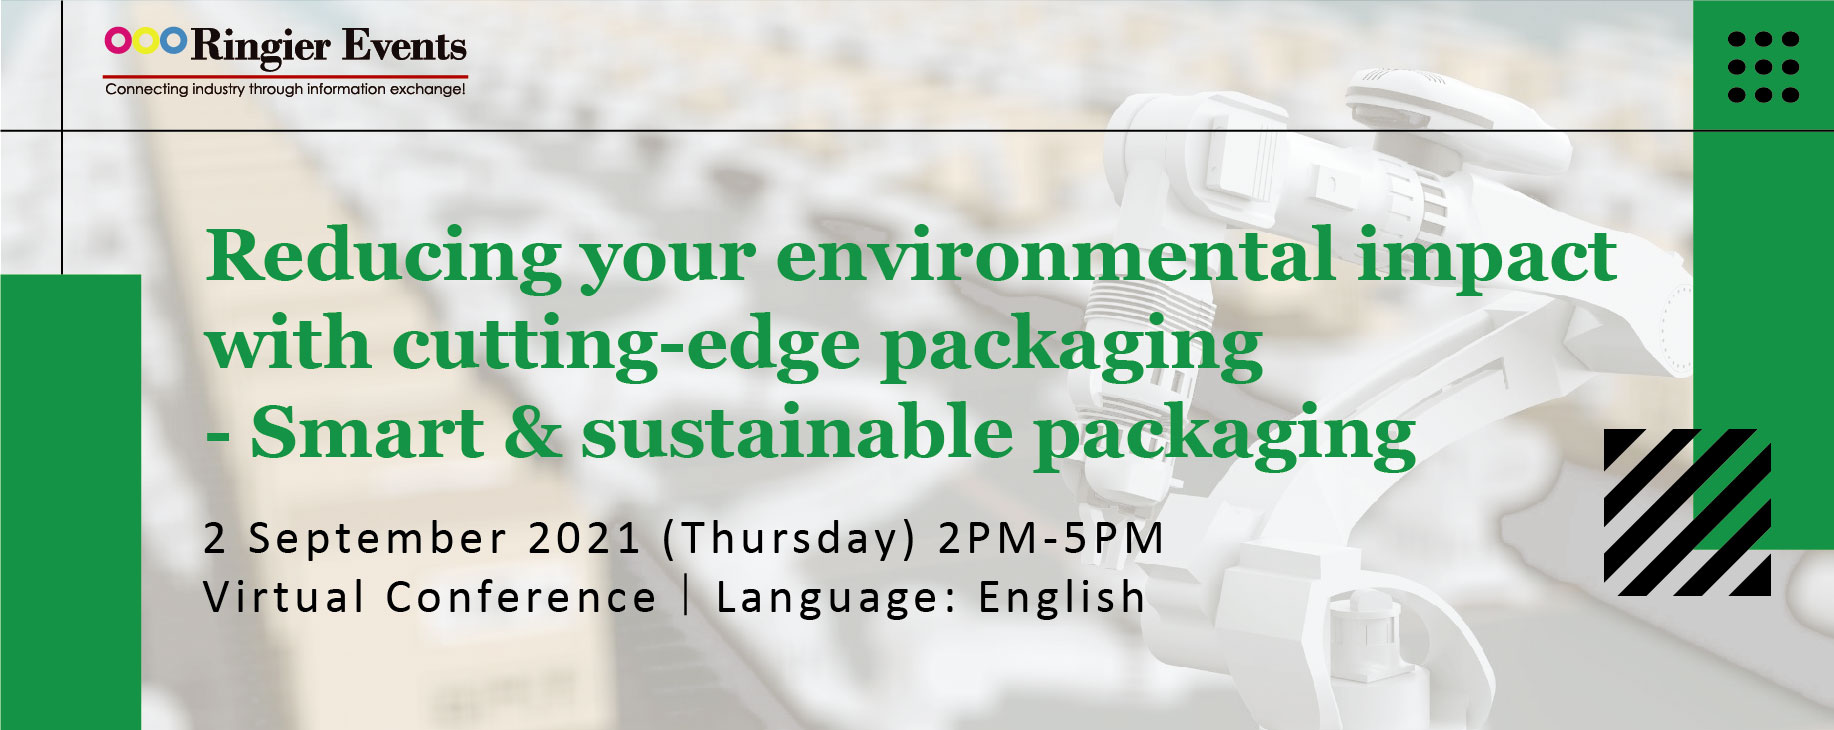 Reducing your environmental impact with cutting-edge packaging - Smart & sustainable packaging